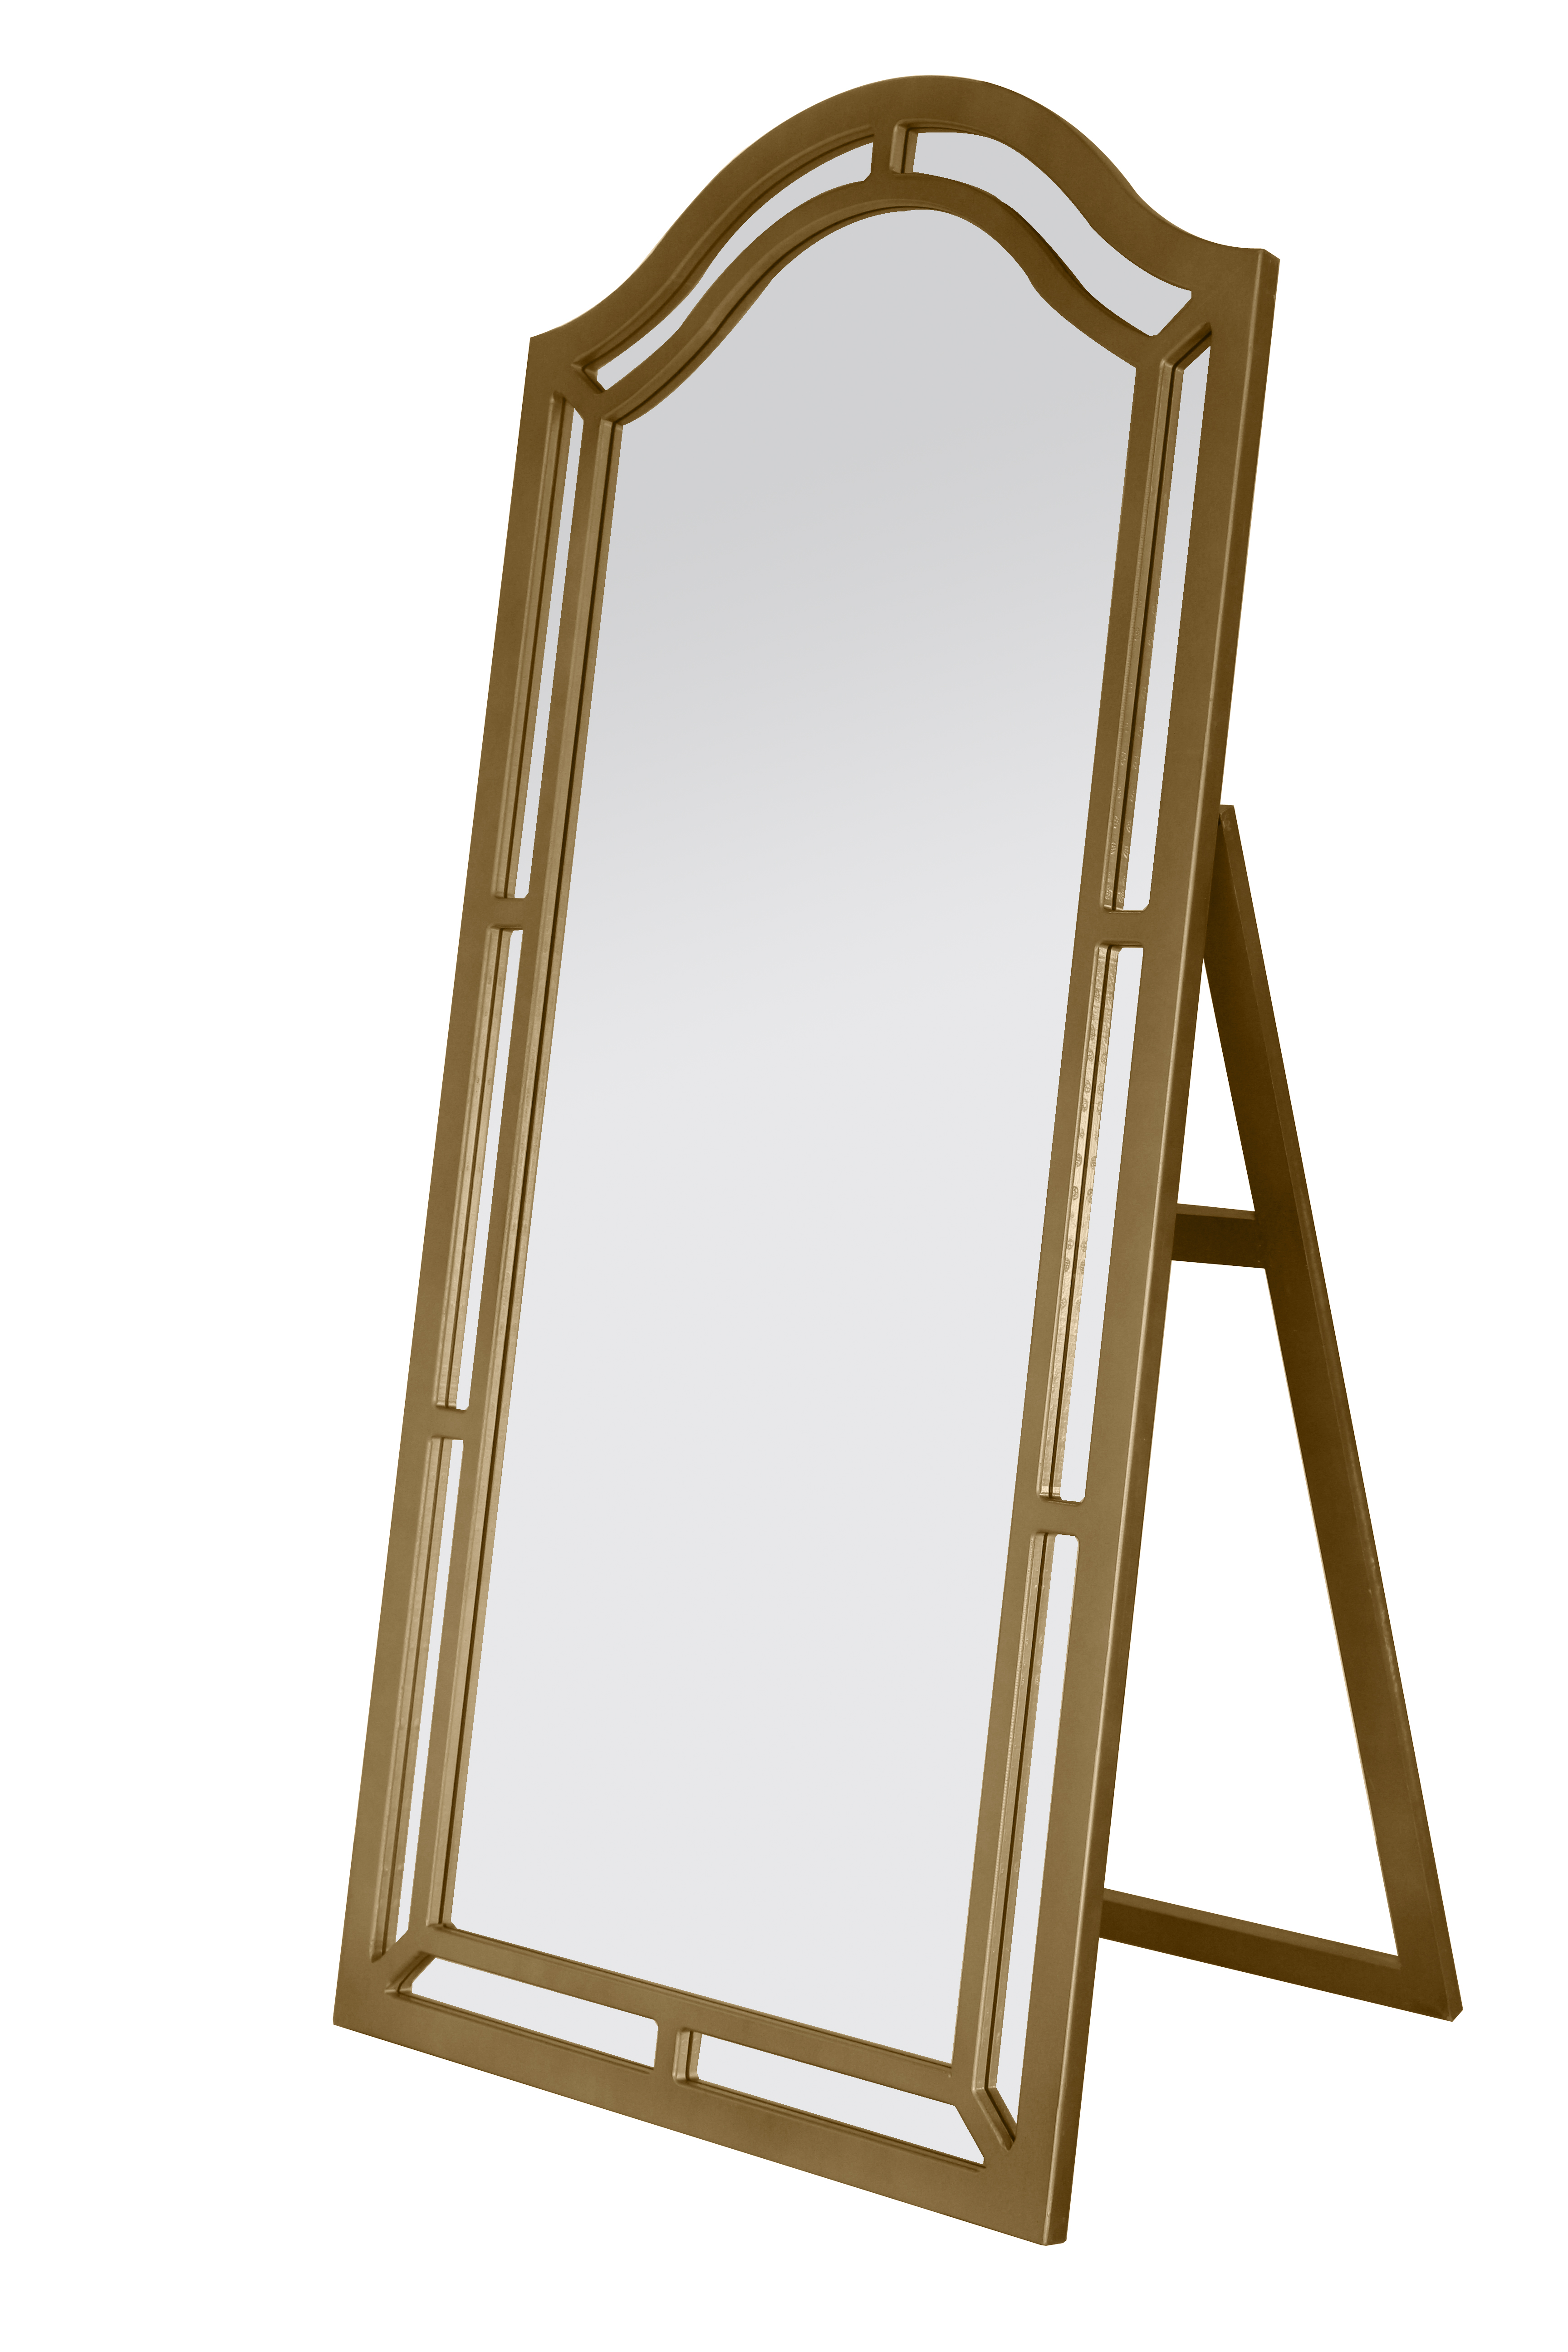 Free standing mirror led lighted 10x1x vanity mirror with for Gold standing mirror